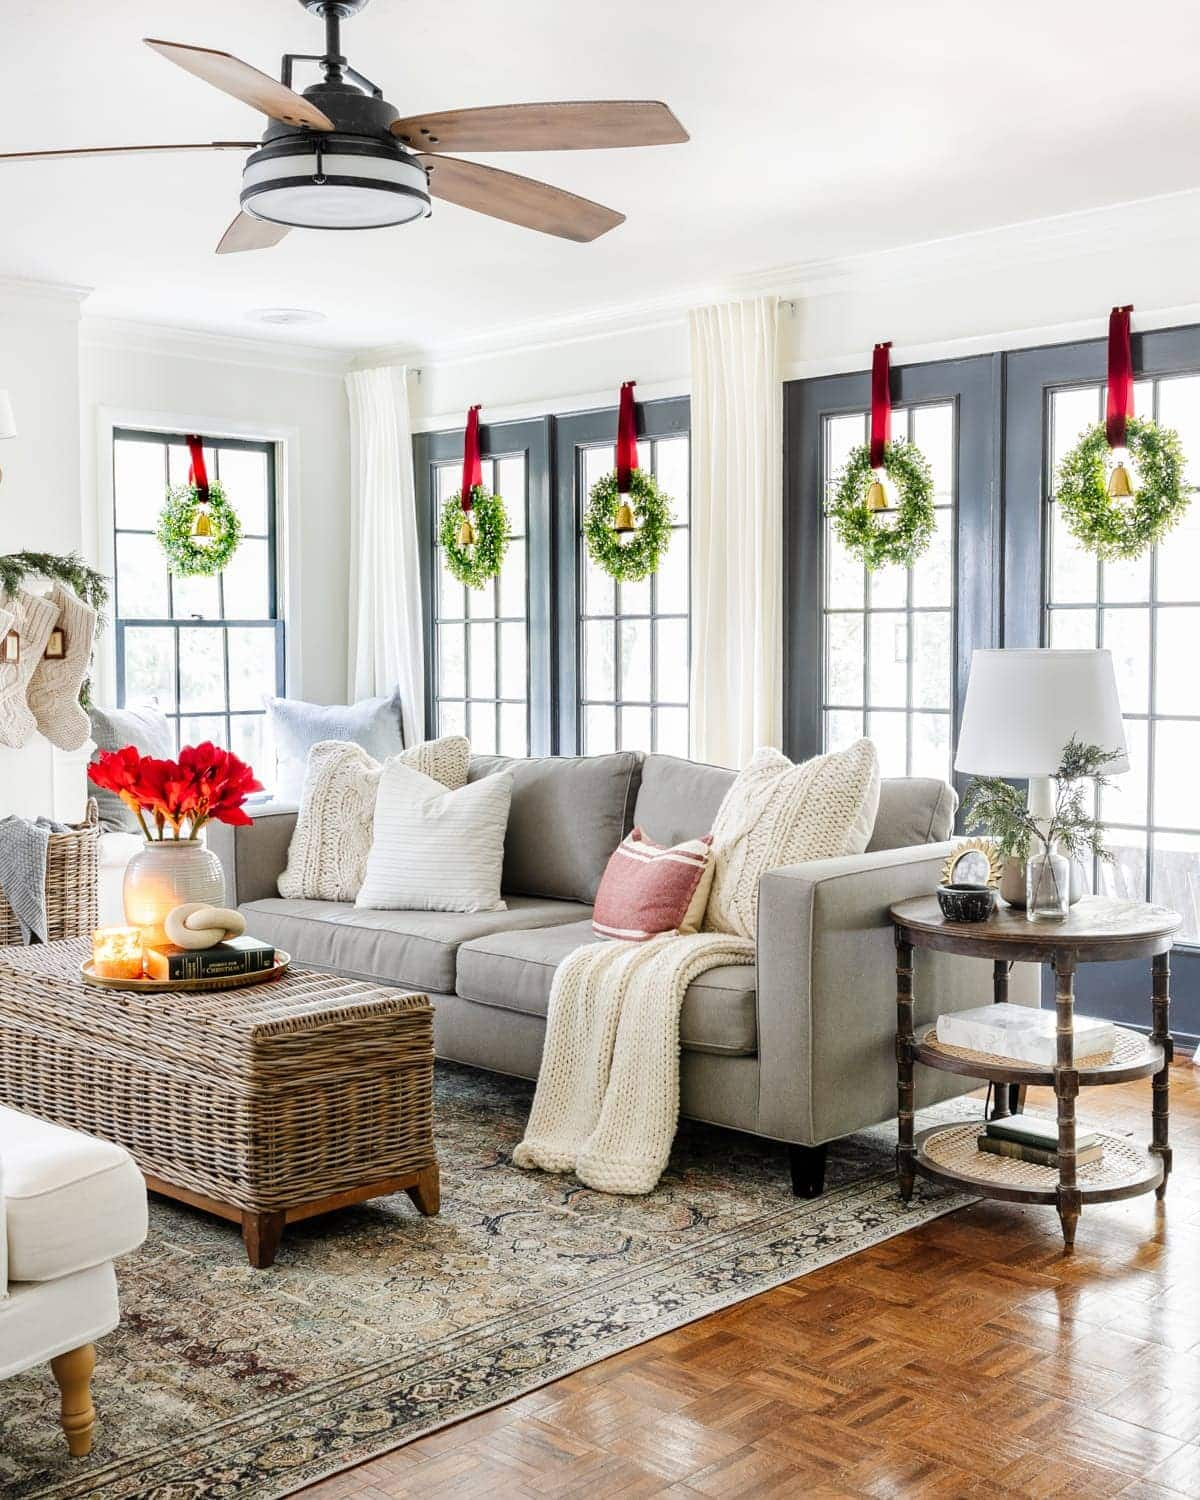 Christmas living room with wreaths hanging on windows